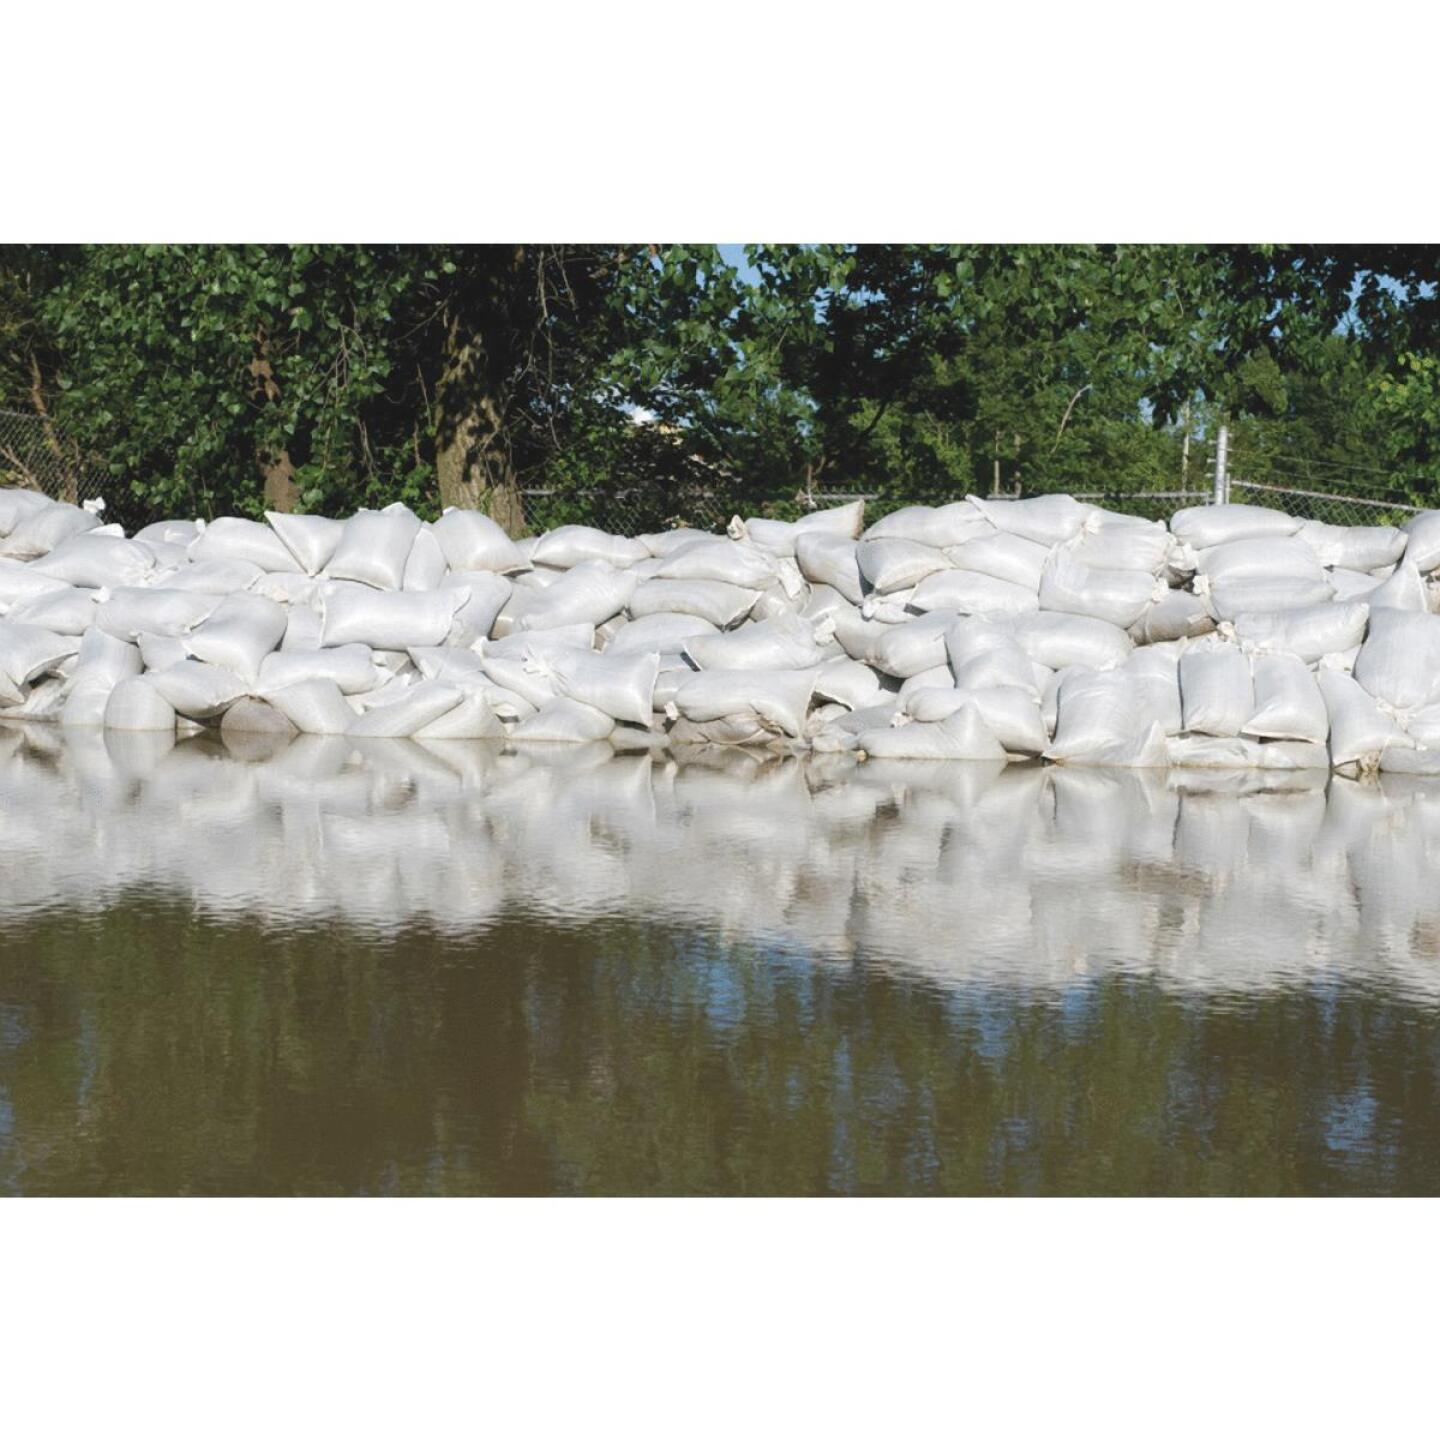 Volm 14 In. x 26 In. Empty Sandbags (1000-Pack) Image 1